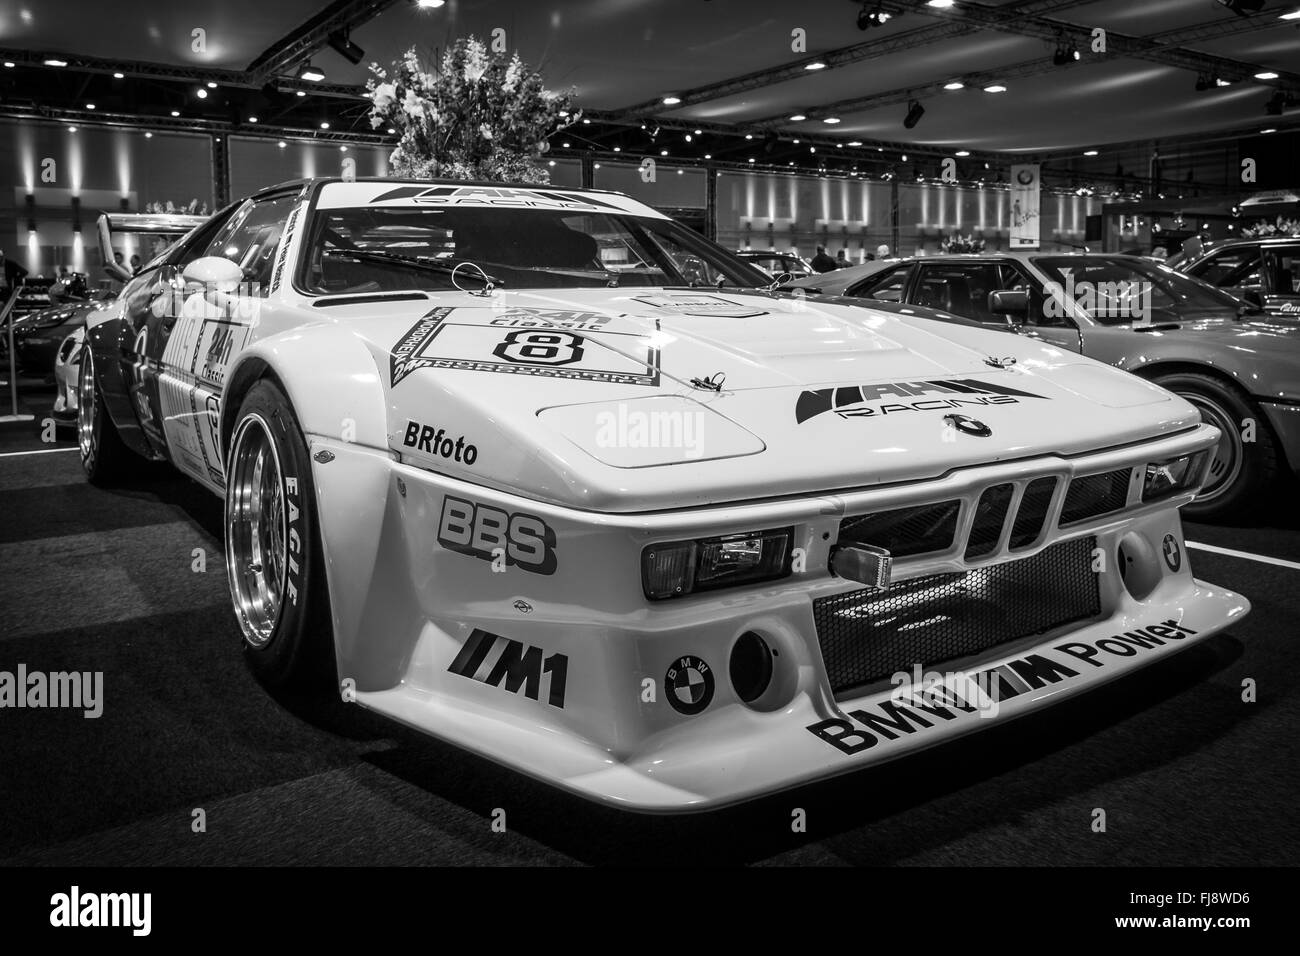 sports car bmw m1 procar racing version of the bmw m1 1980 black stock photo royalty free. Black Bedroom Furniture Sets. Home Design Ideas